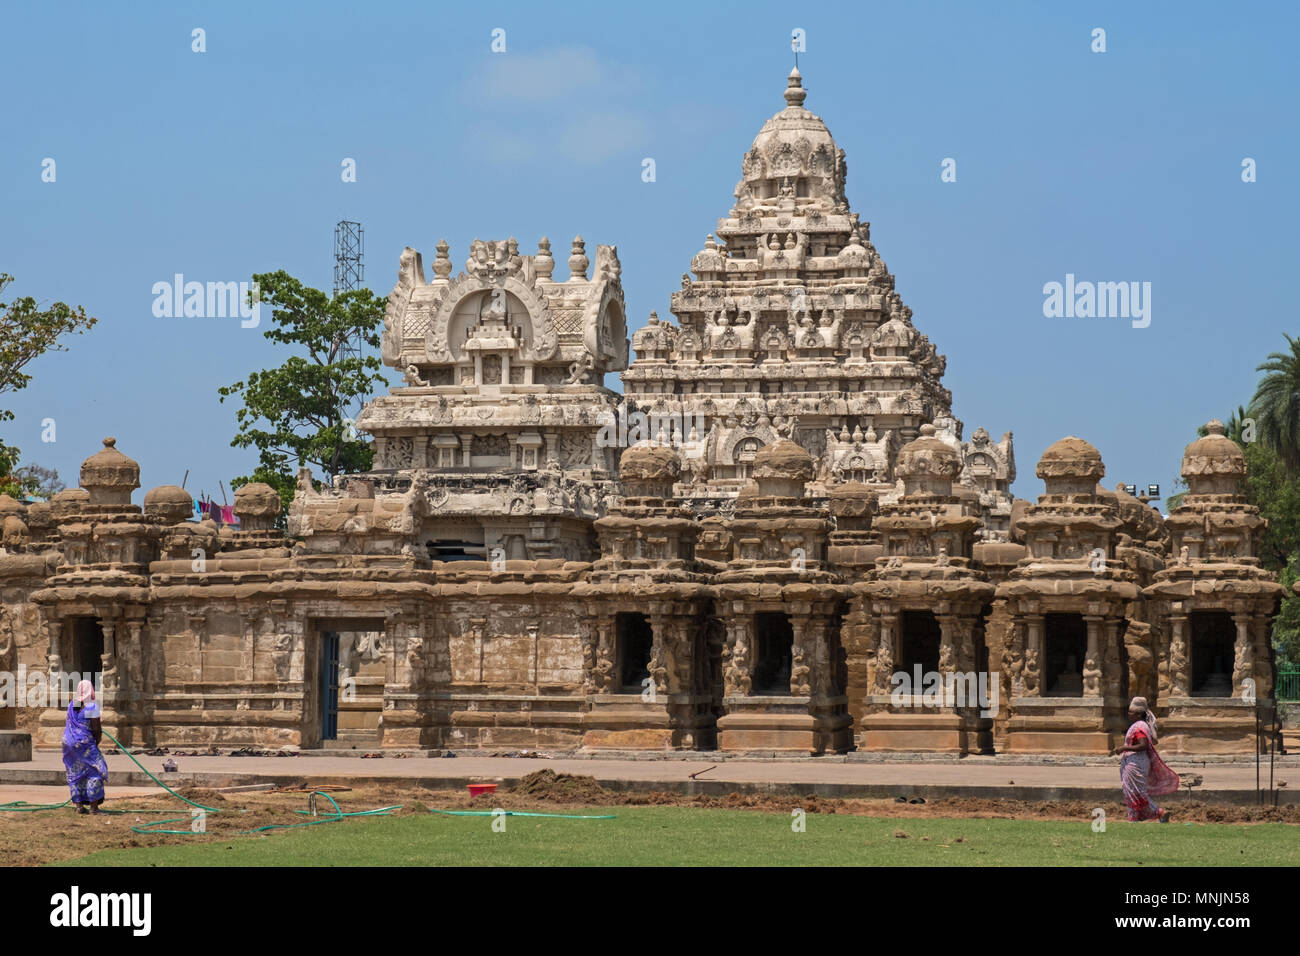 Kanchipuram, India - March 19, 2018: Local women working on. a landscaping project in front of the entrance to the 8th century Kailasanathar temple - Stock Image